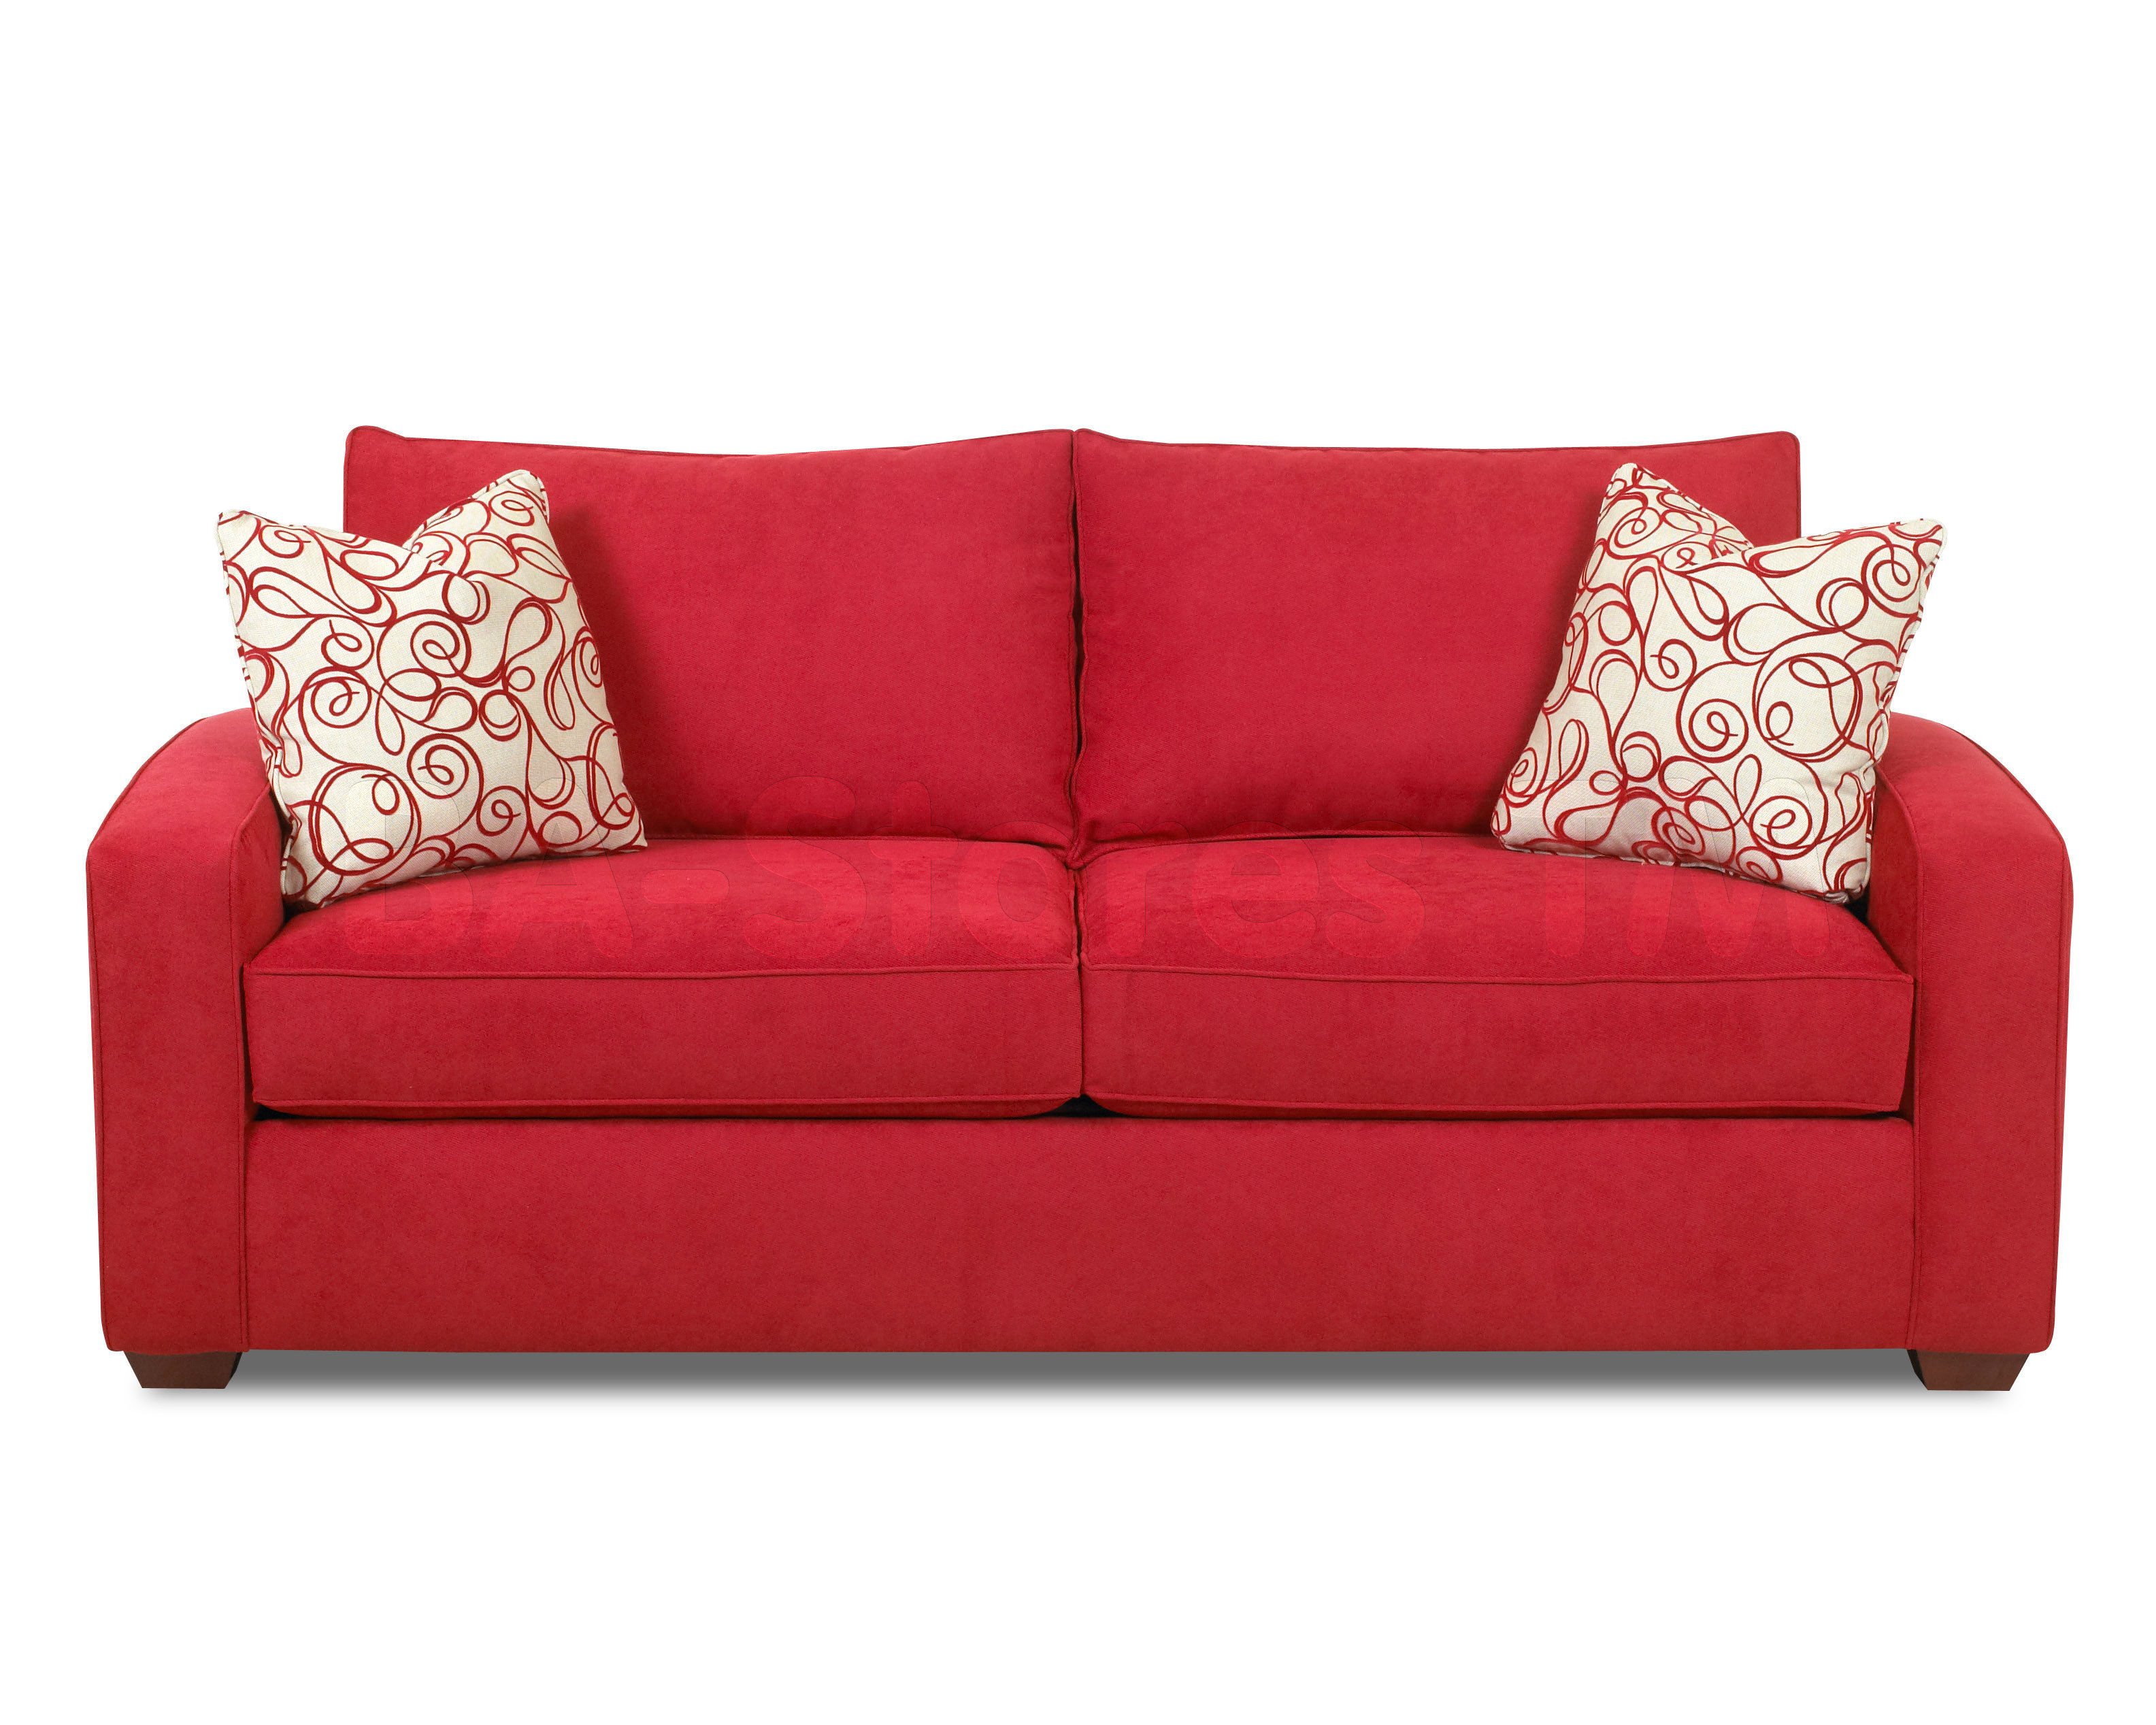 excellent bed sofa couch collection-Fresh Bed sofa Couch Layout